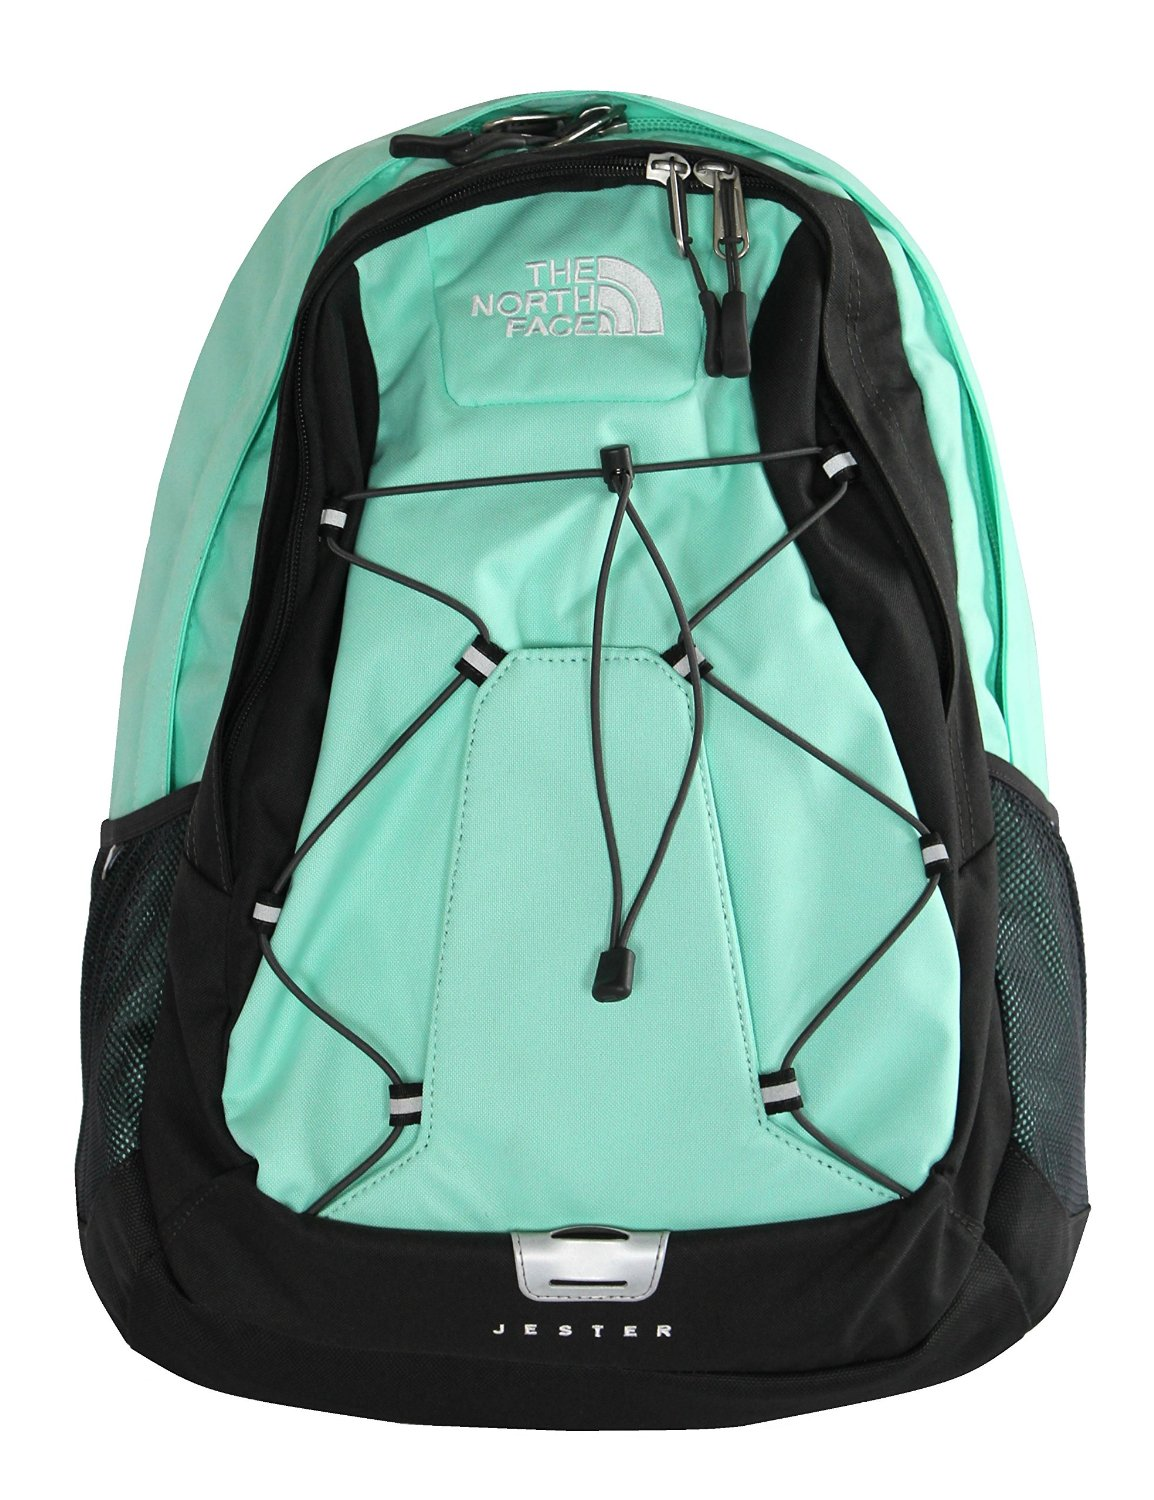 The North Face Womens Jester Backpack Tnf Black Os - CEAGESP 8541432a4d